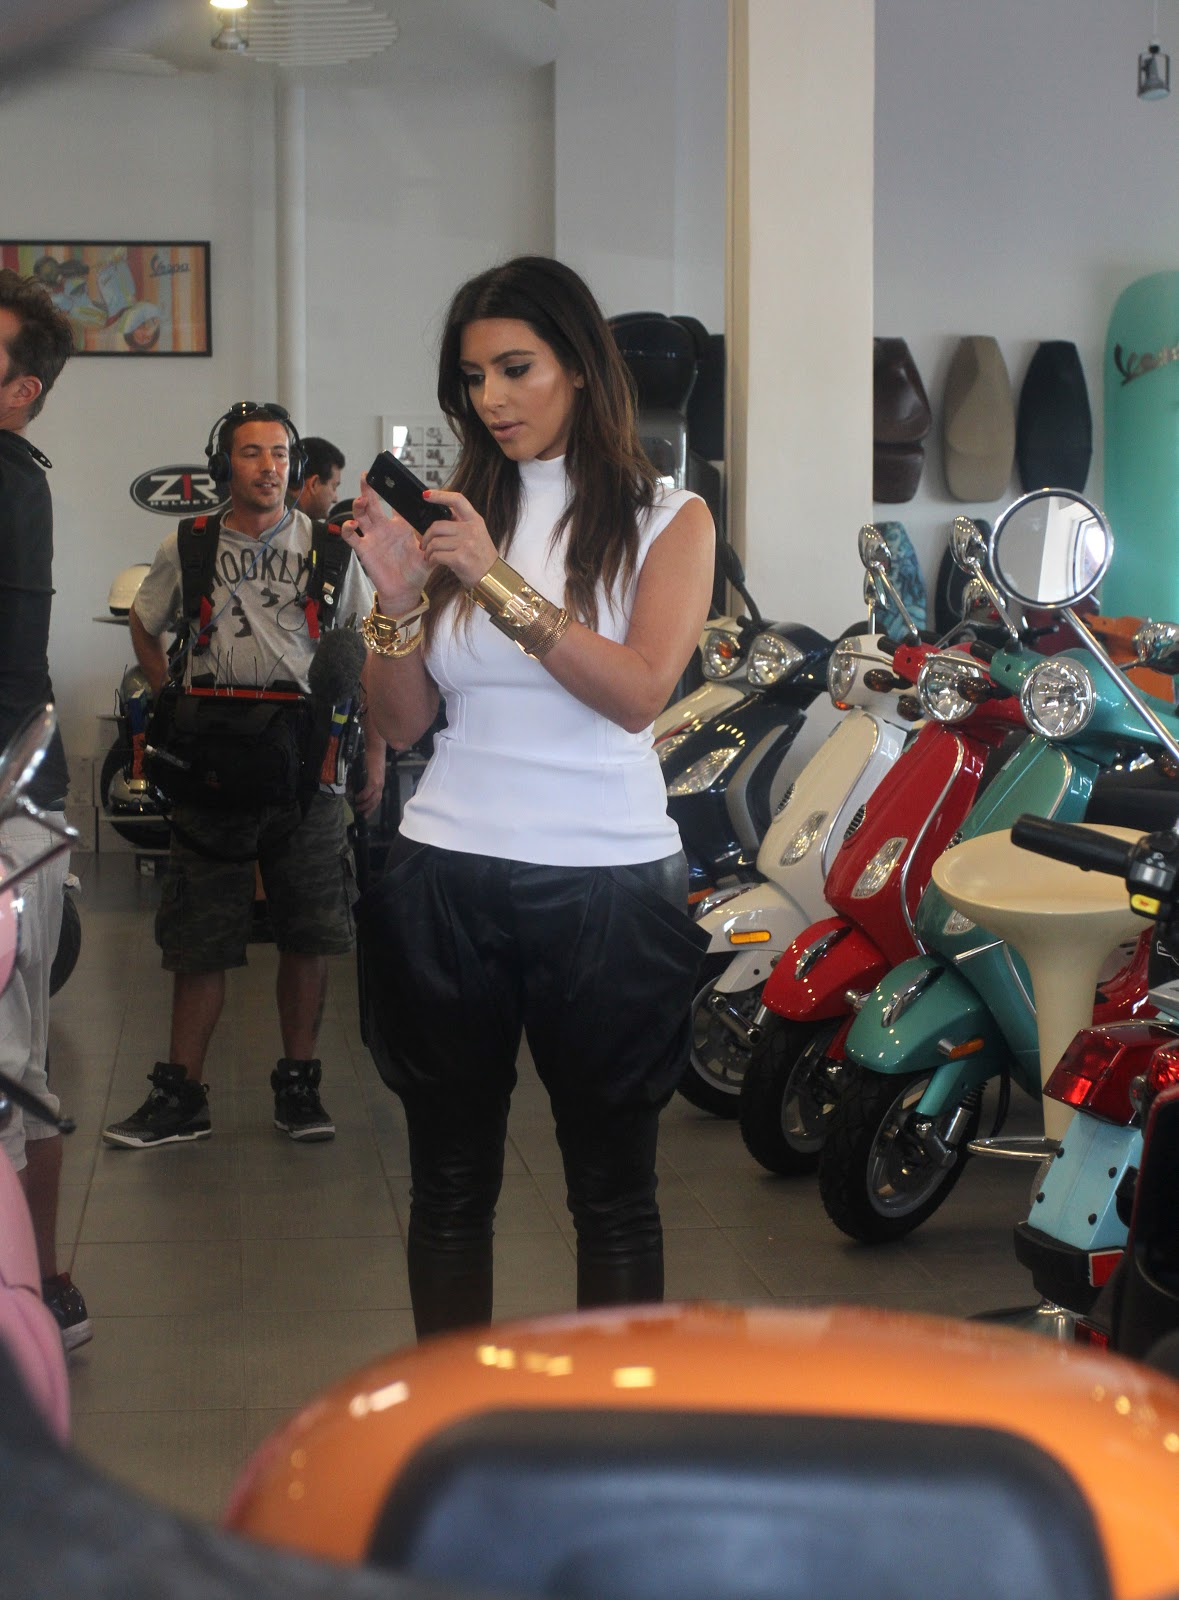 http://3.bp.blogspot.com/-ZcvwuPGCnHE/UHsTxVPJqRI/AAAAAAAATK4/ZRolcogGFnM/s1600/Kim+Kardashian+at+a+Motorcycle+Store+in+Miami+Beach+October+13th+2012+-02.jpg